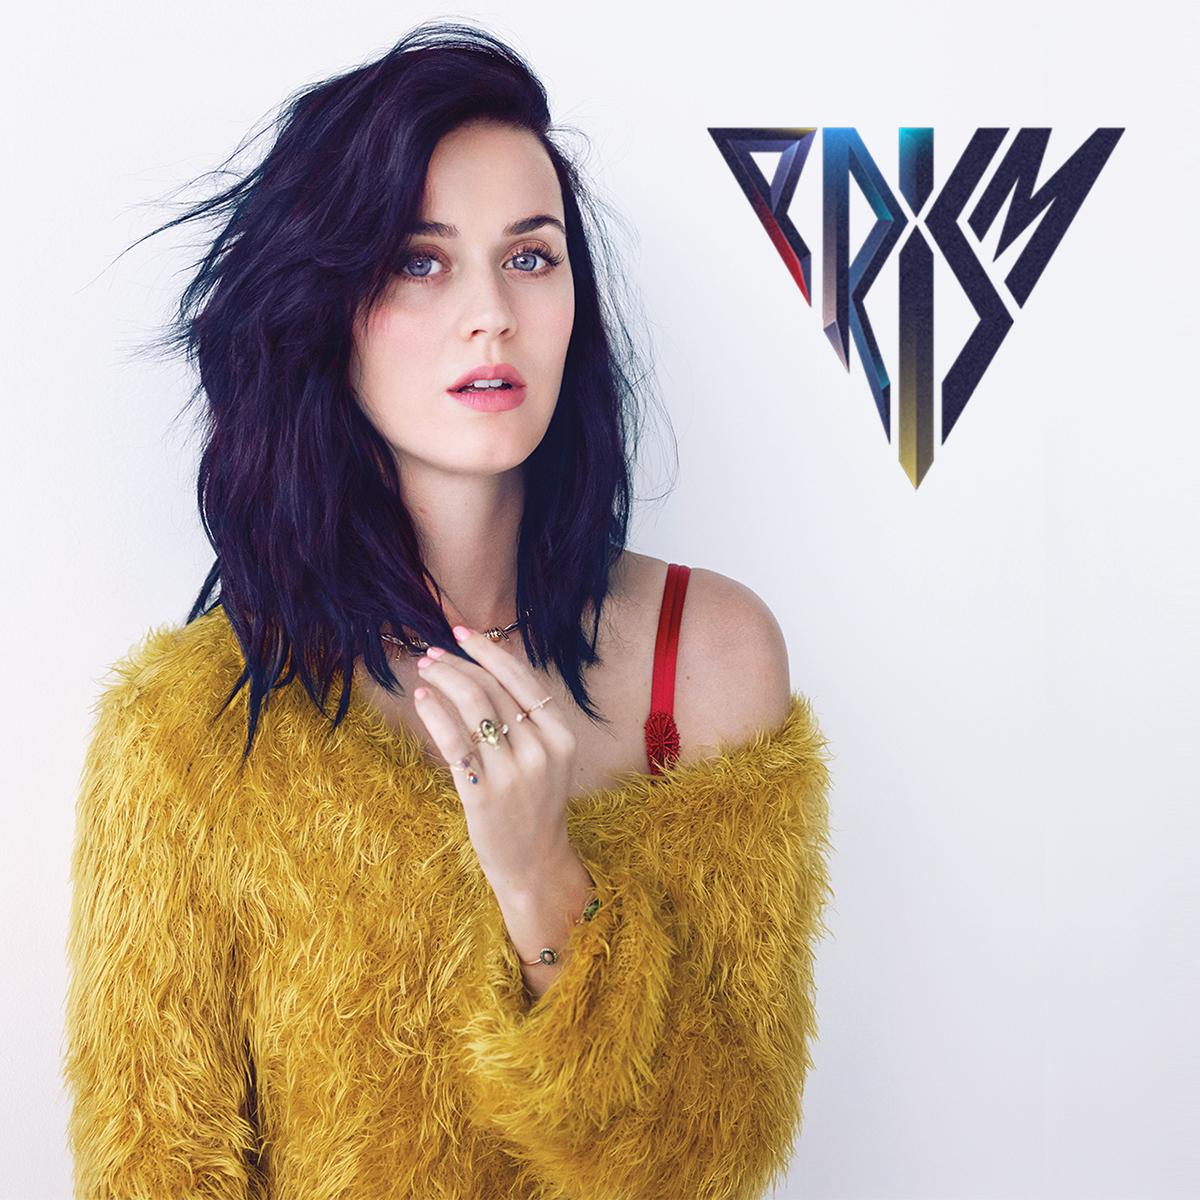 Katy-Perry-Prism-Promotional-2013-1200x1200Katy Perry Roar Album Artwork